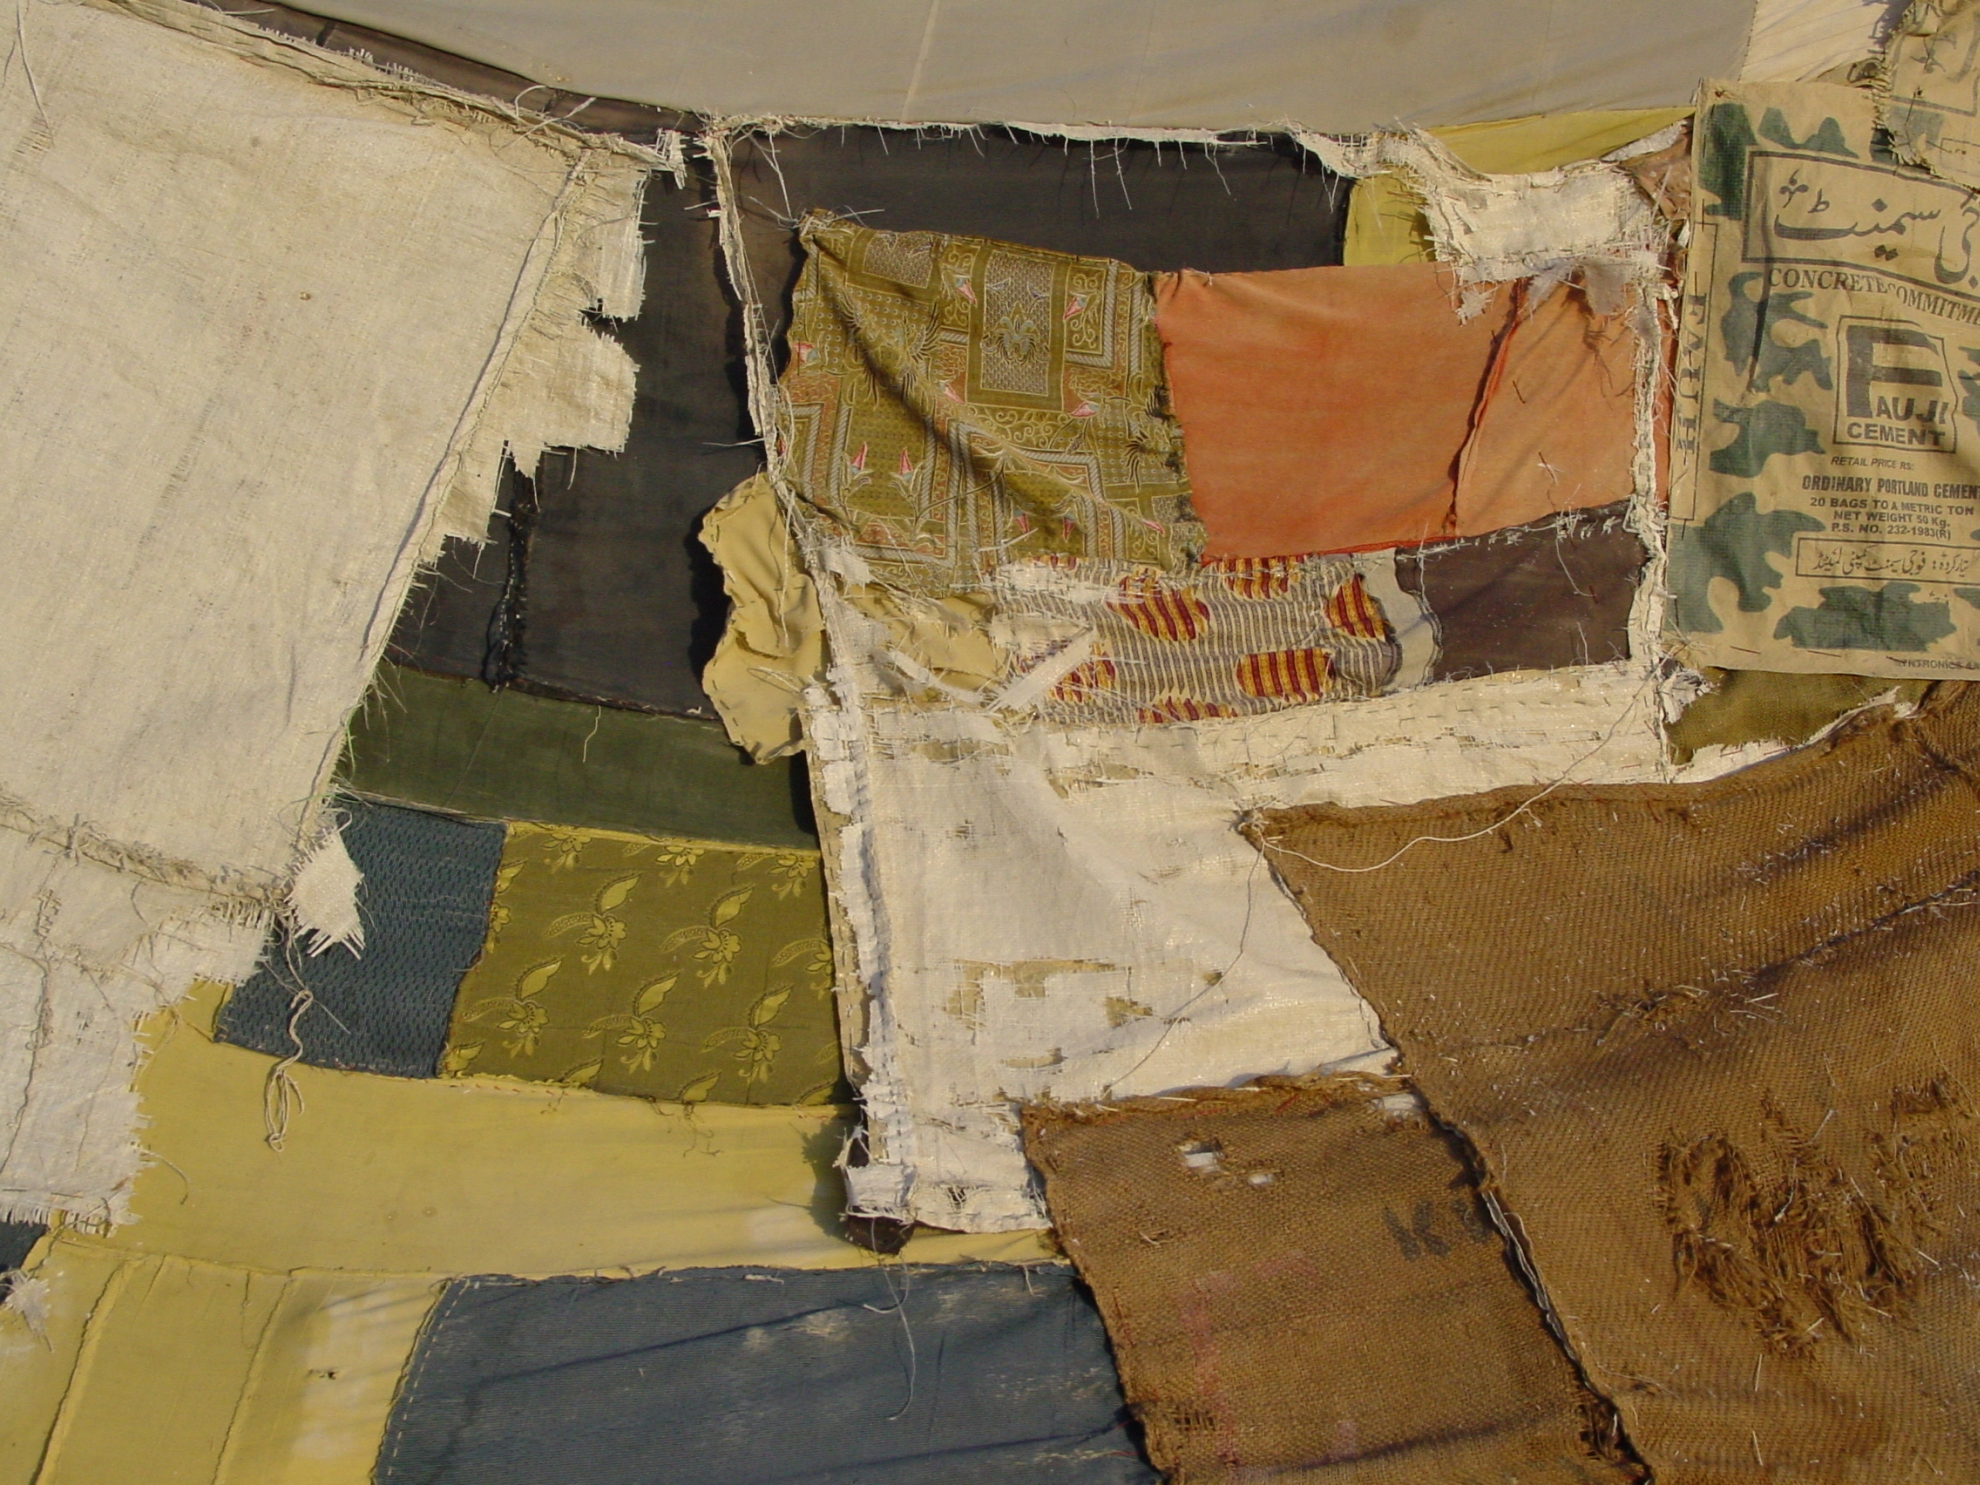 The tents in the camp have been repaired multiple times, resulting in this patchwork look. Photo: Jens Kjær Jensen, 2003